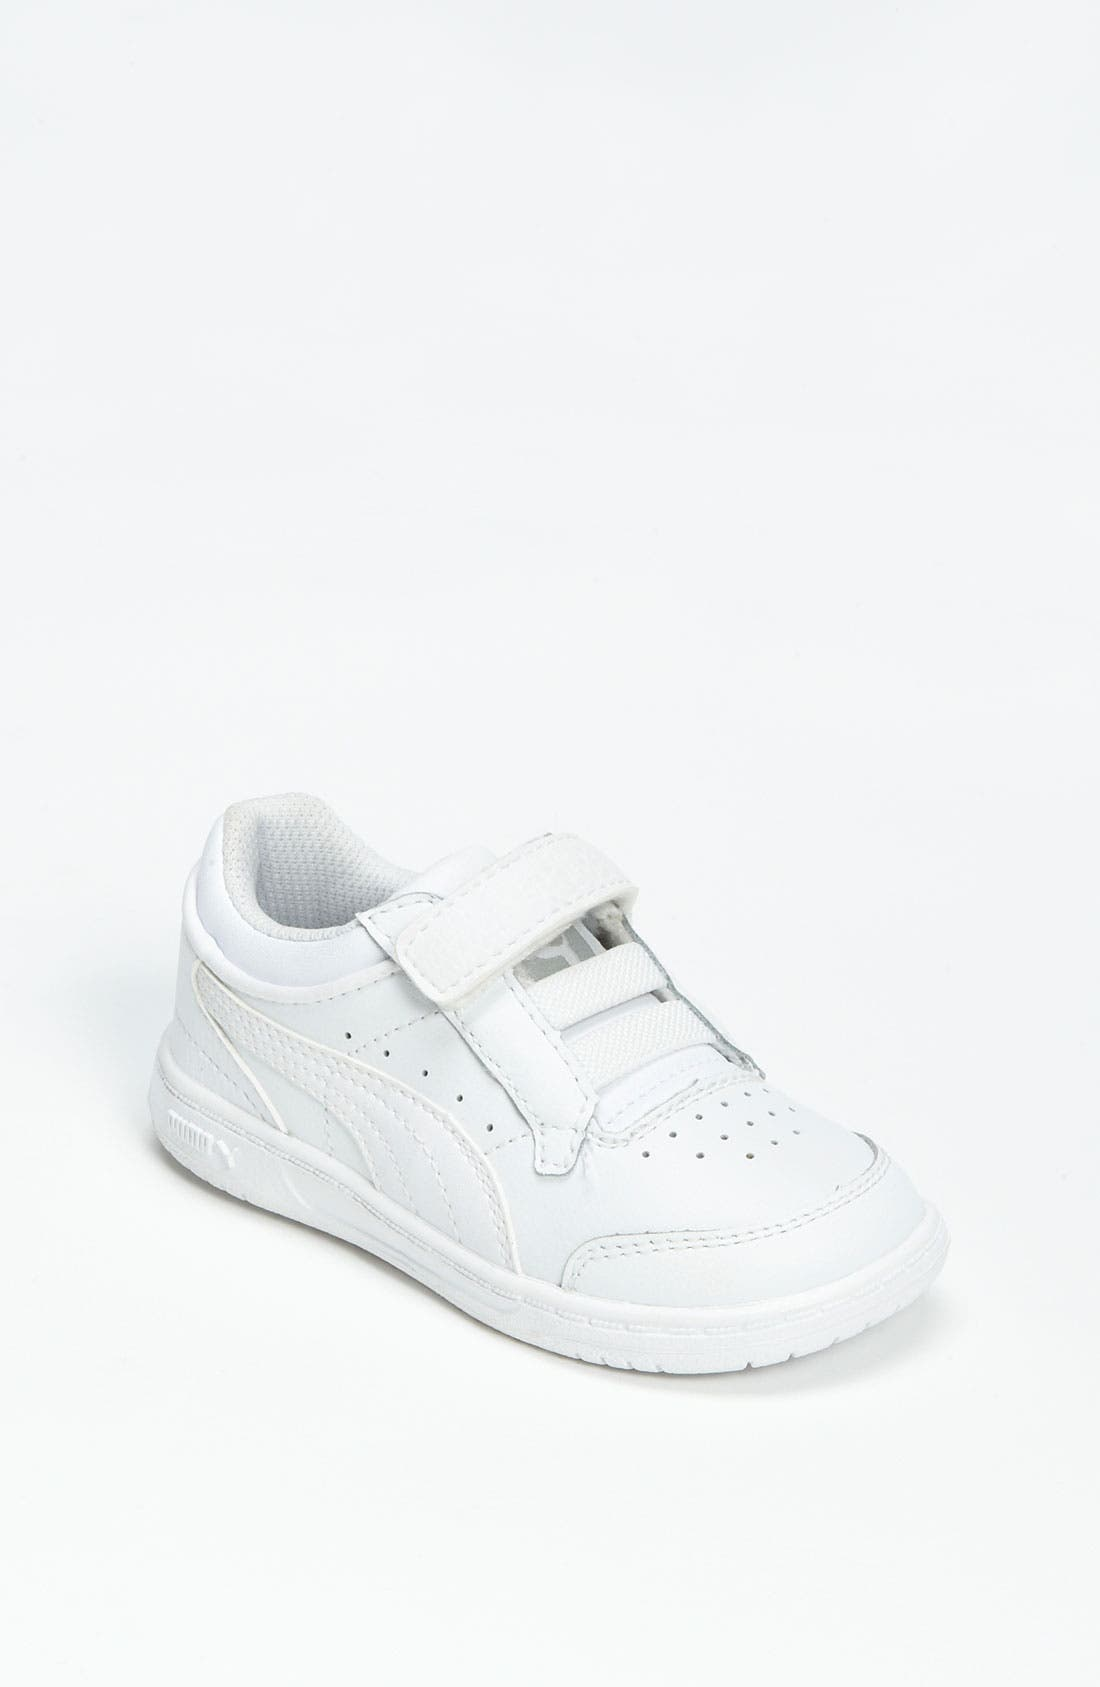 Alternate Image 1 Selected - PUMA 'Full Court Lo' Sneaker (Baby, Walker, Toddler & Little Kid)